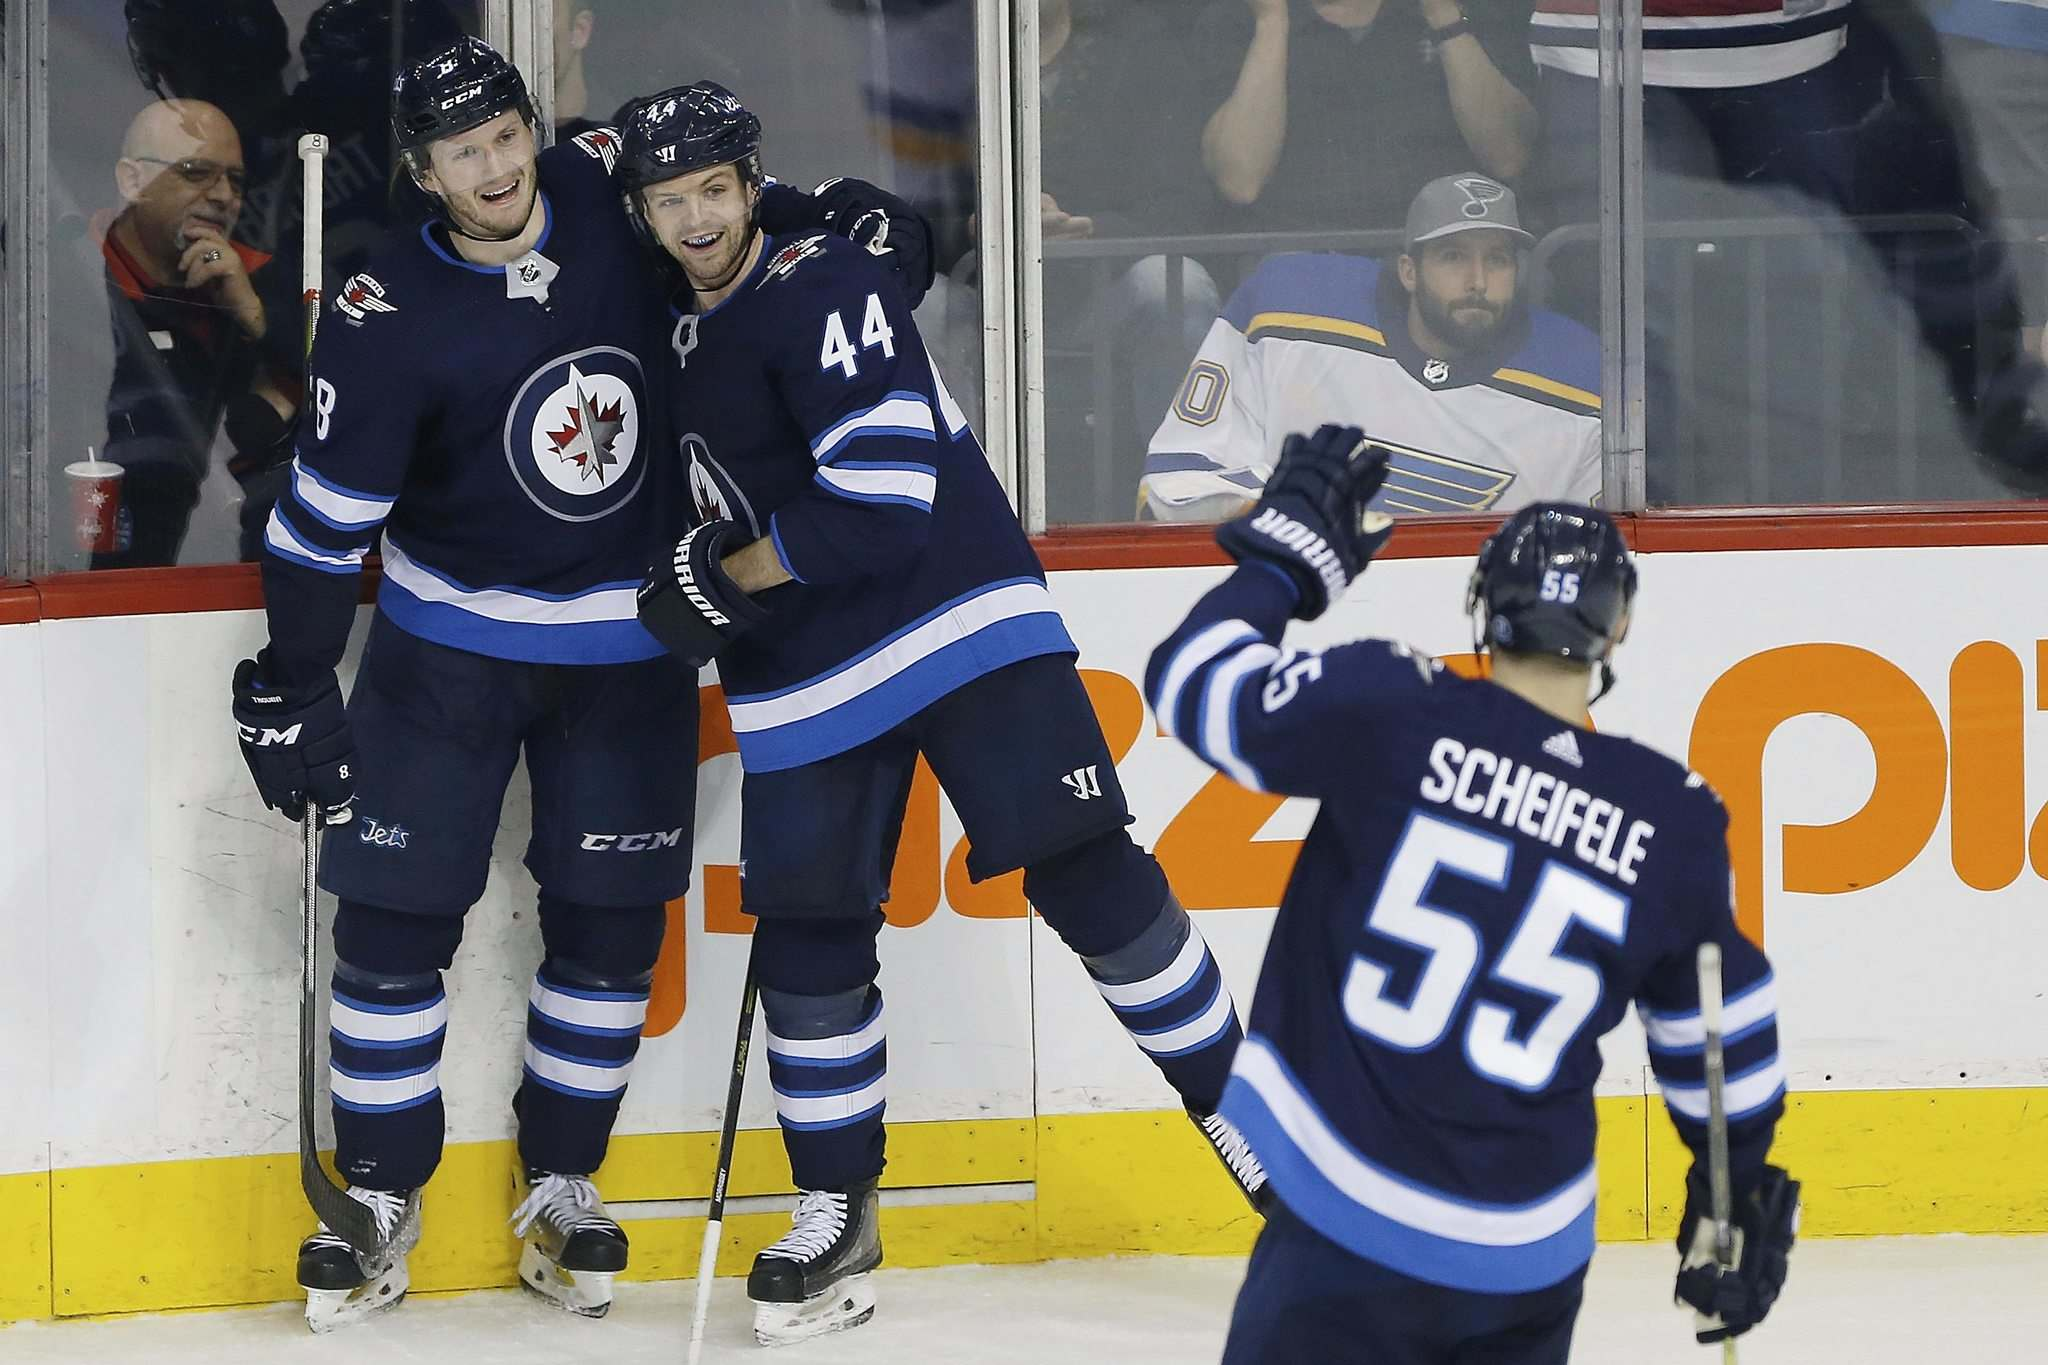 JOHN WOODS / WINNIPEG FREE PRESS FILES</p><p>Winnipeg Jets defenceman Jacob Trouba (left) will be out for six to eight weeks with a high ankle sprain leaving his blue-line partner Josh Morrissey (centre) to play with another teammate.</p>